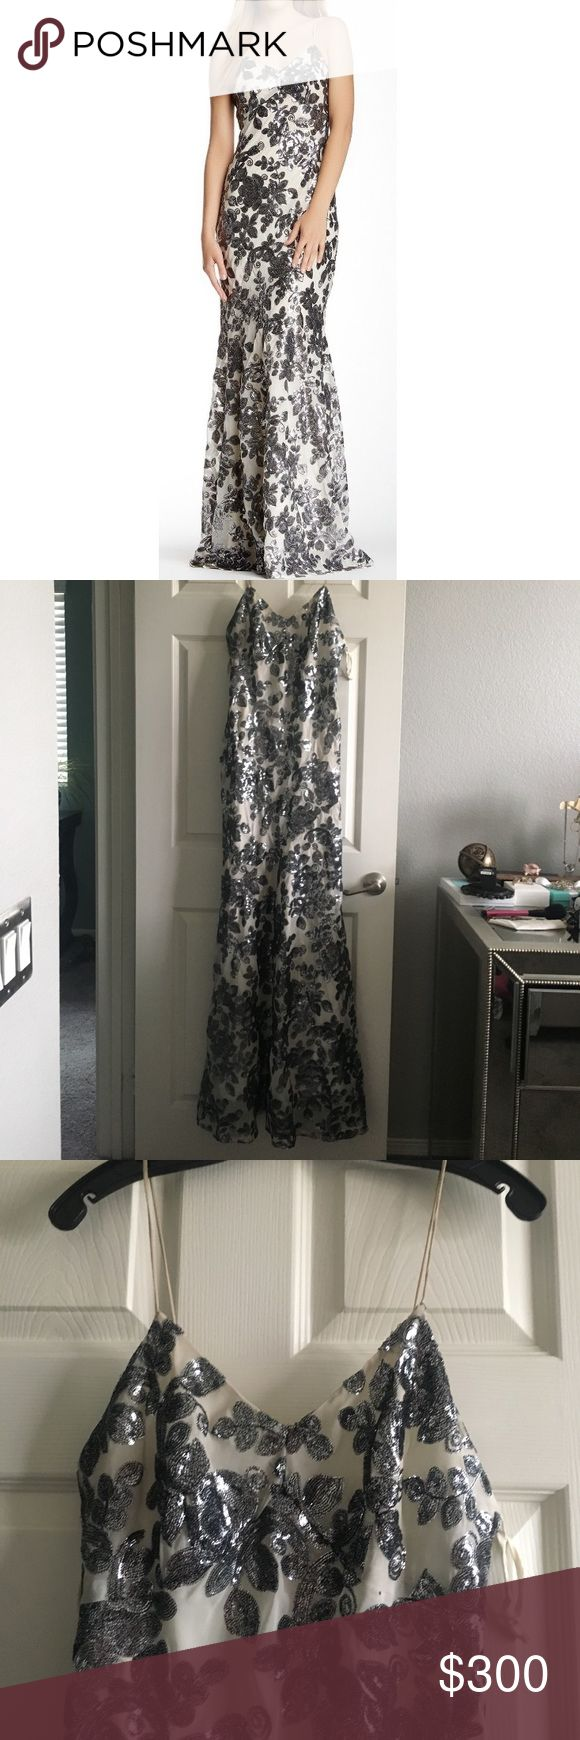 Zac Posen FloralSequins Dress Floral Grey sequins with black stitching long evening gown beautiful only worn once spaghetti straps can be worn for prom a wedding or a gorgeous evening dress Zac Posen Dresses Maxi